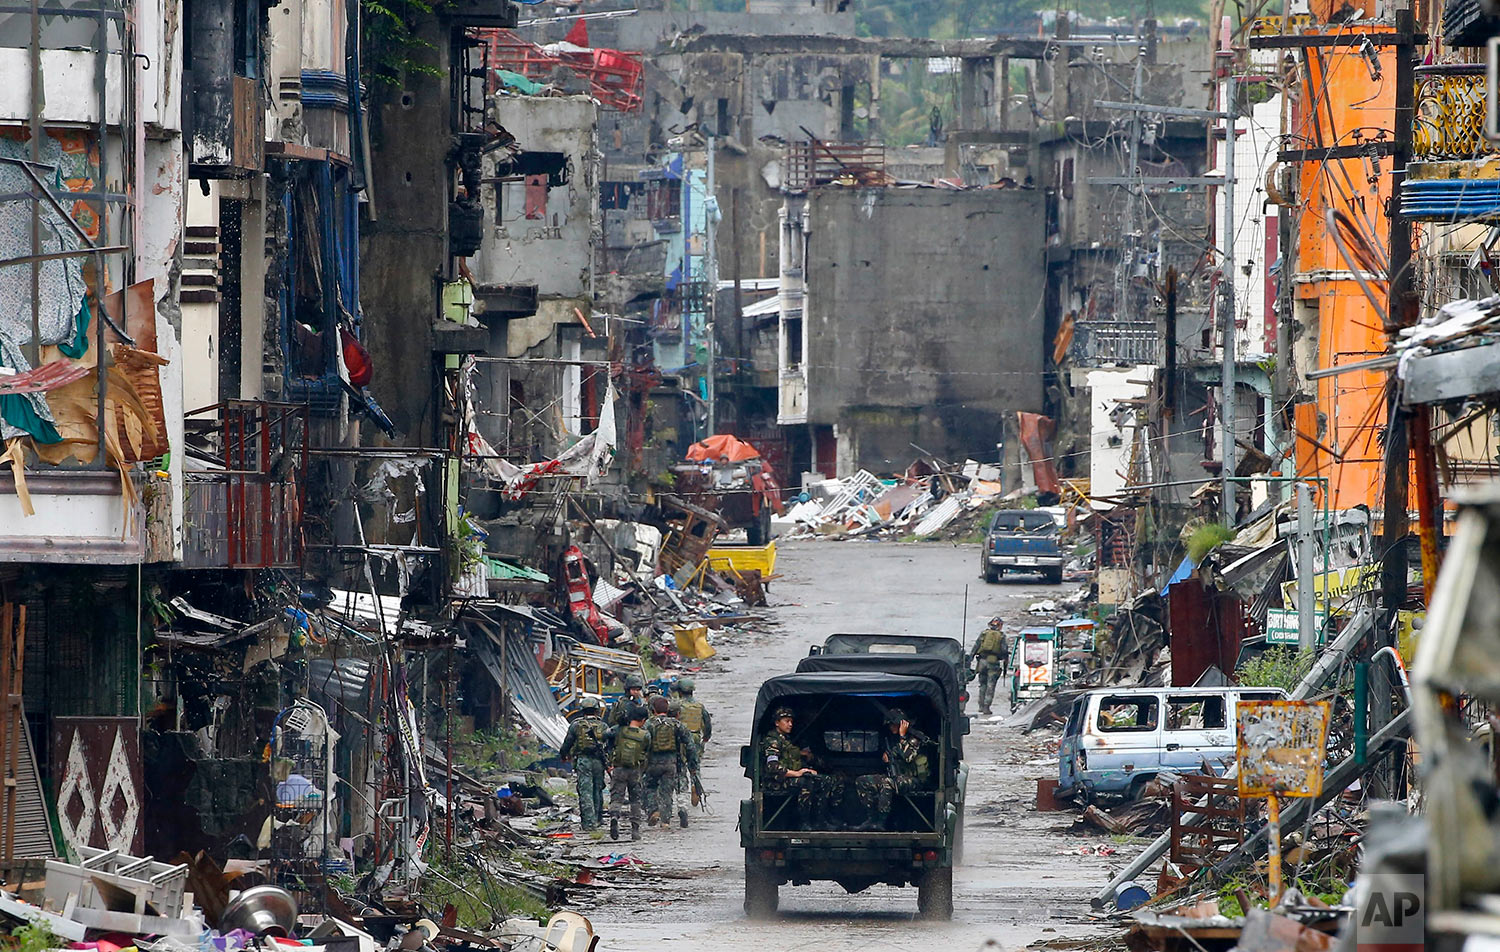 """Amidst the ruins at """"Ground Zero"""" Philippine troops return to their deployment after attending the ceremony wherein President Rodrigo Duterte declared the liberation of Marawi city in southern Philippines after almost five months of the siege by pro-Islamic State group militants Tuesday, Oct. 17, 2017. Gunfire rang out sporadically and explosions thudded as Philippine soldiers fought Tuesday to gain control of the last pocket of Marawi controlled by Islamic militants as President Duterte declared the southern city liberated from """"terrorist influence."""" (AP Photo/Bullit Marquez)"""